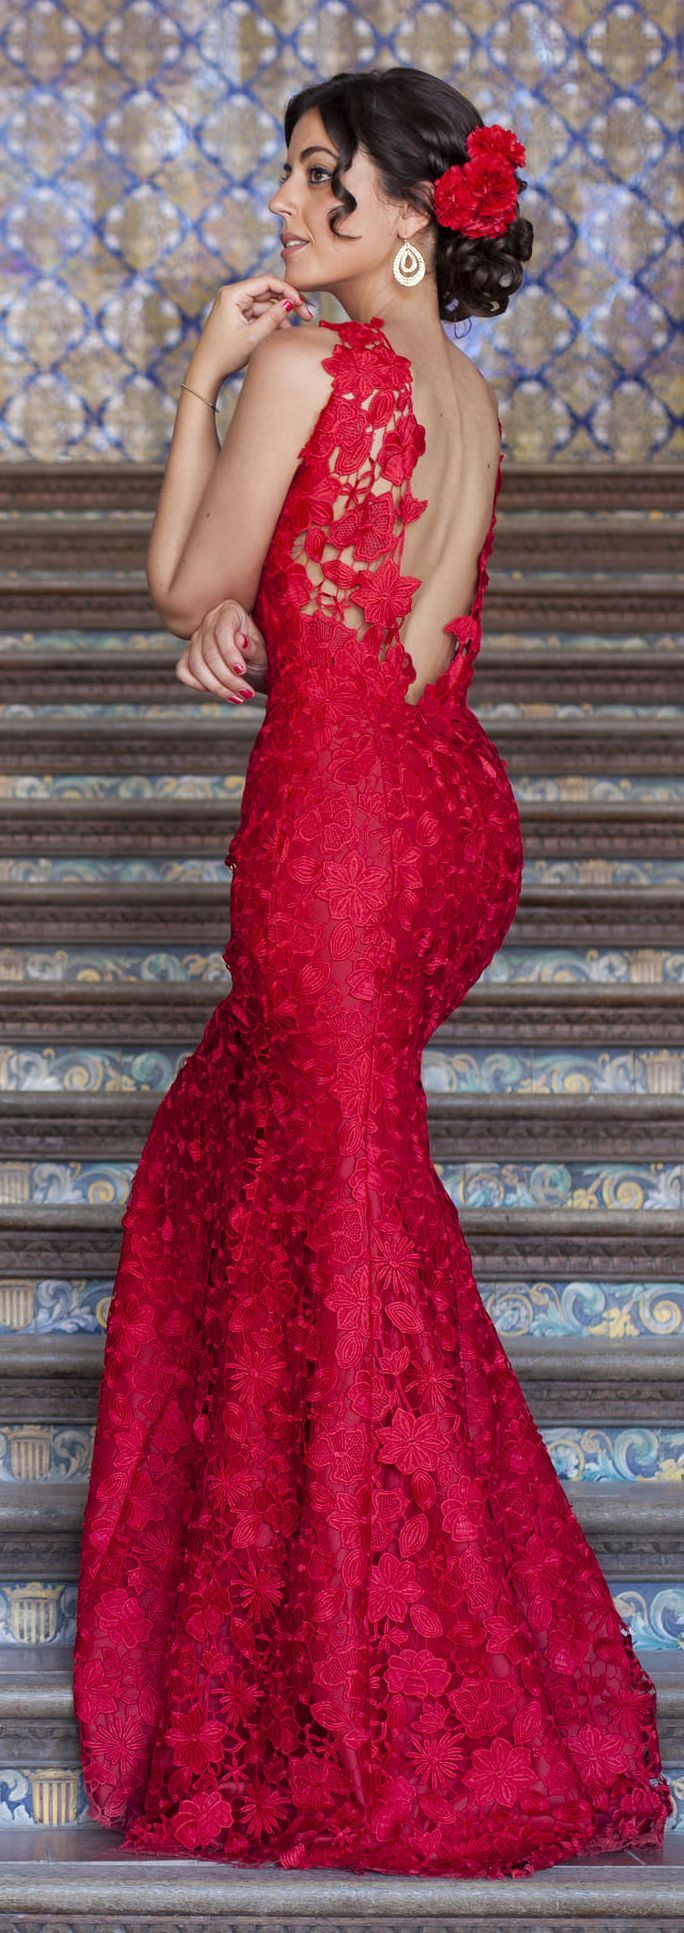 Red Andalusian Gown Cocktail Style - 1sillaparamibolso